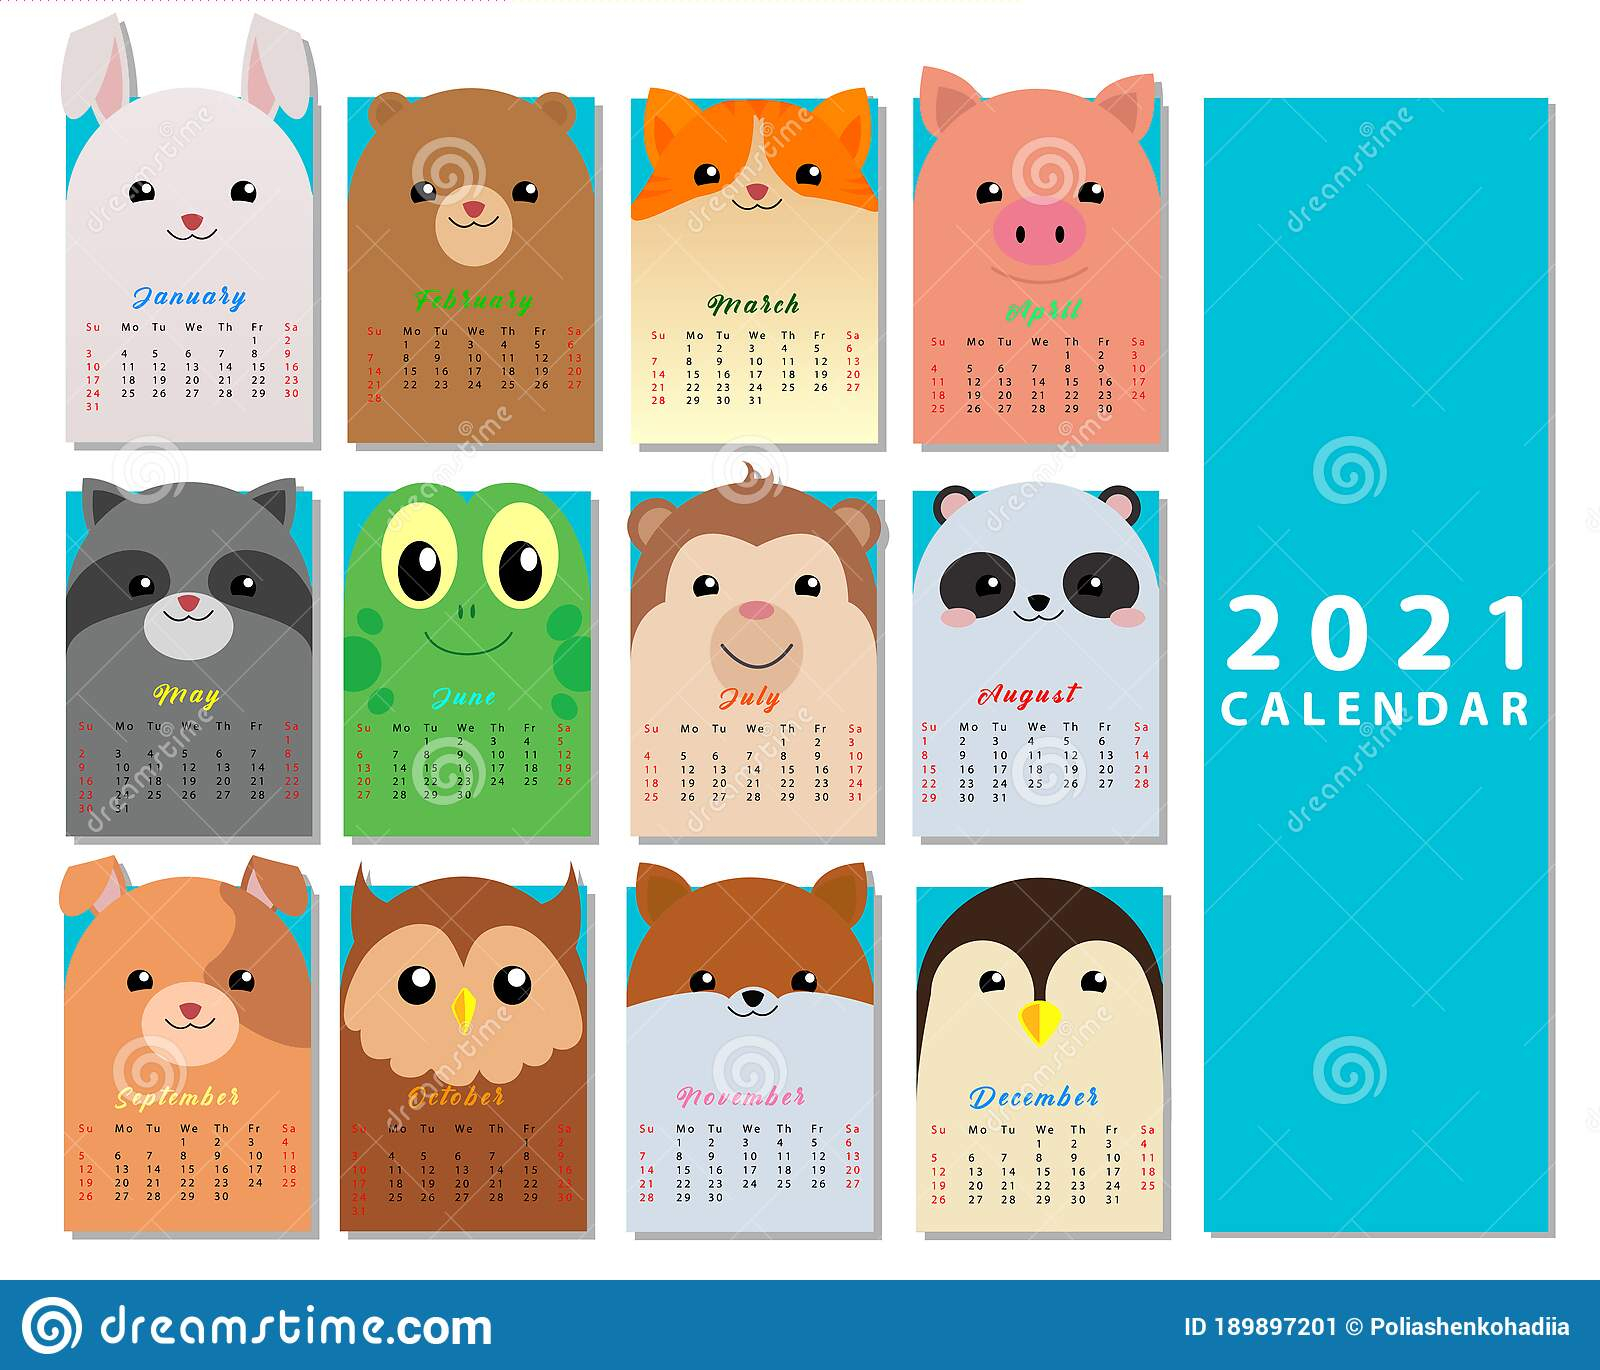 Monthly Calendar 2021 From Sunday To Saturday. Stock Vector with regard to Sunday To Saturday Calendar